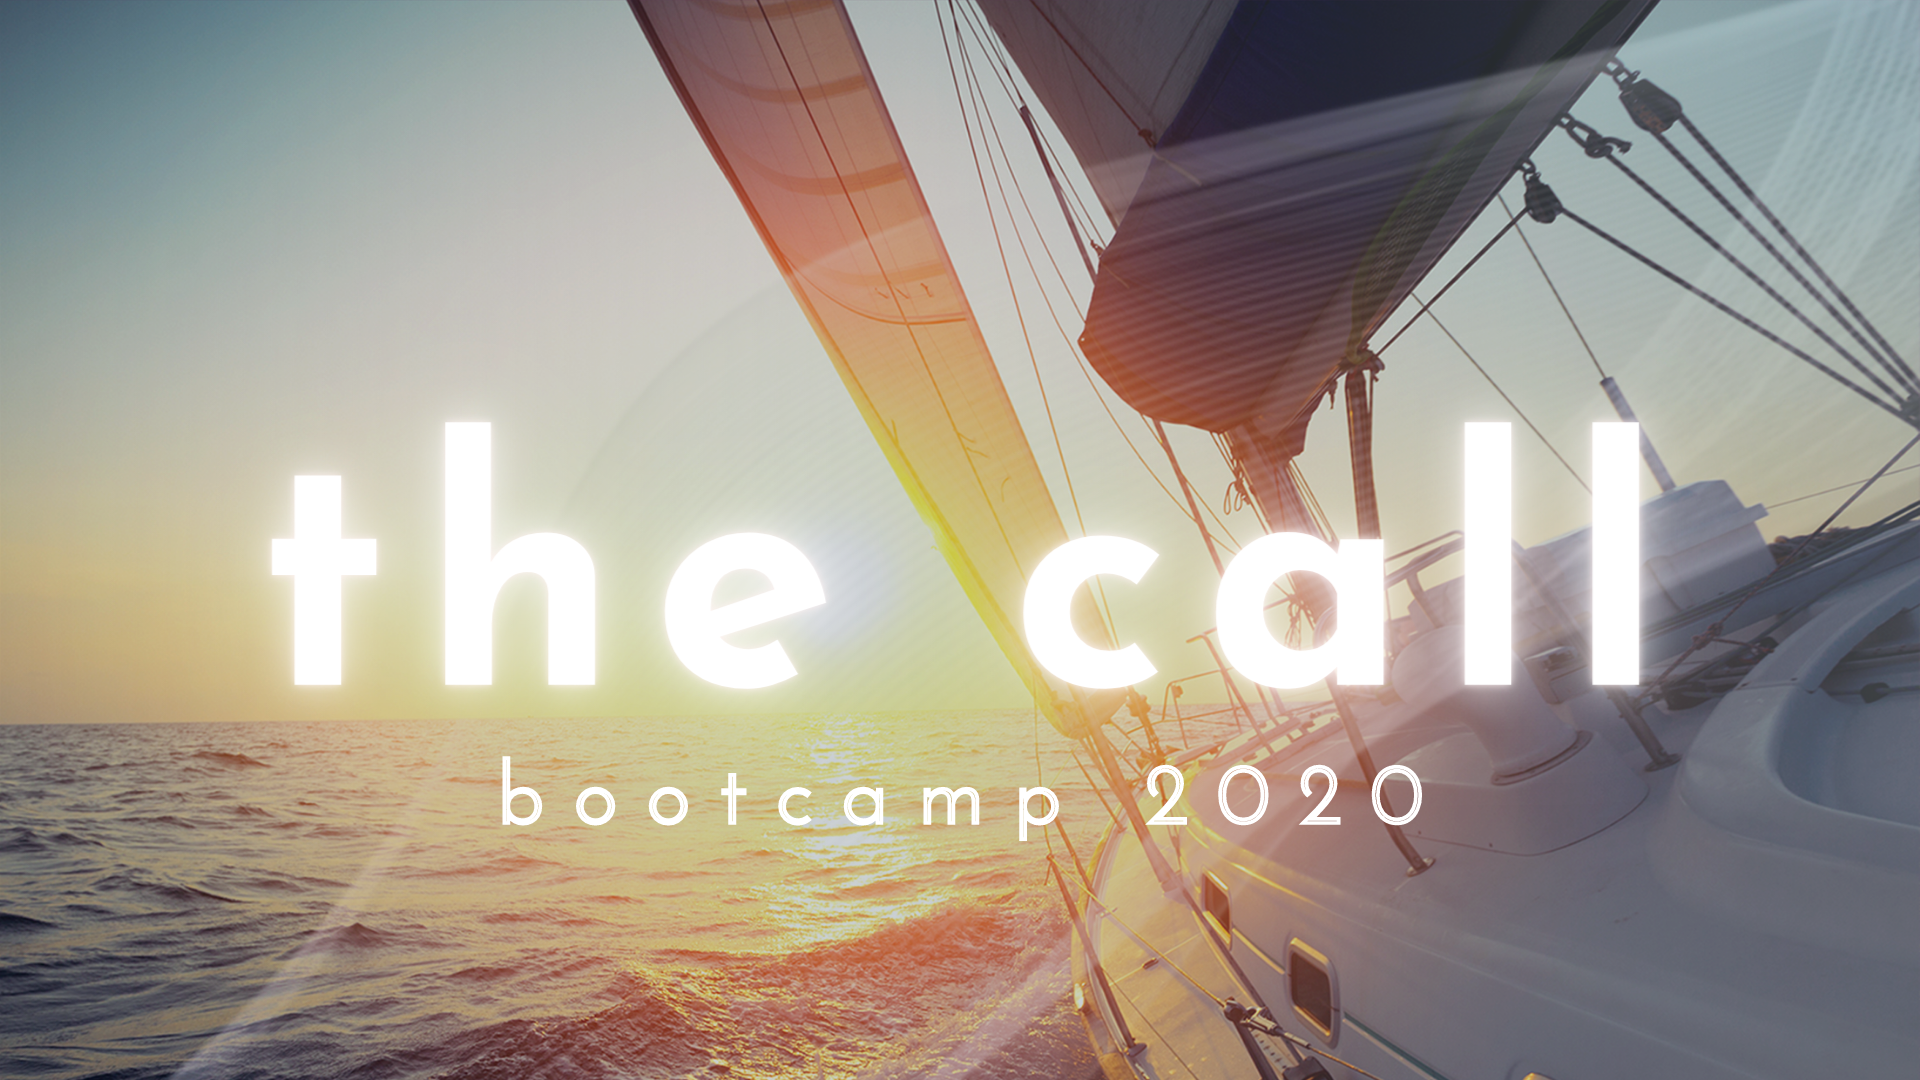 The Call Bootcamp 2020 16x9